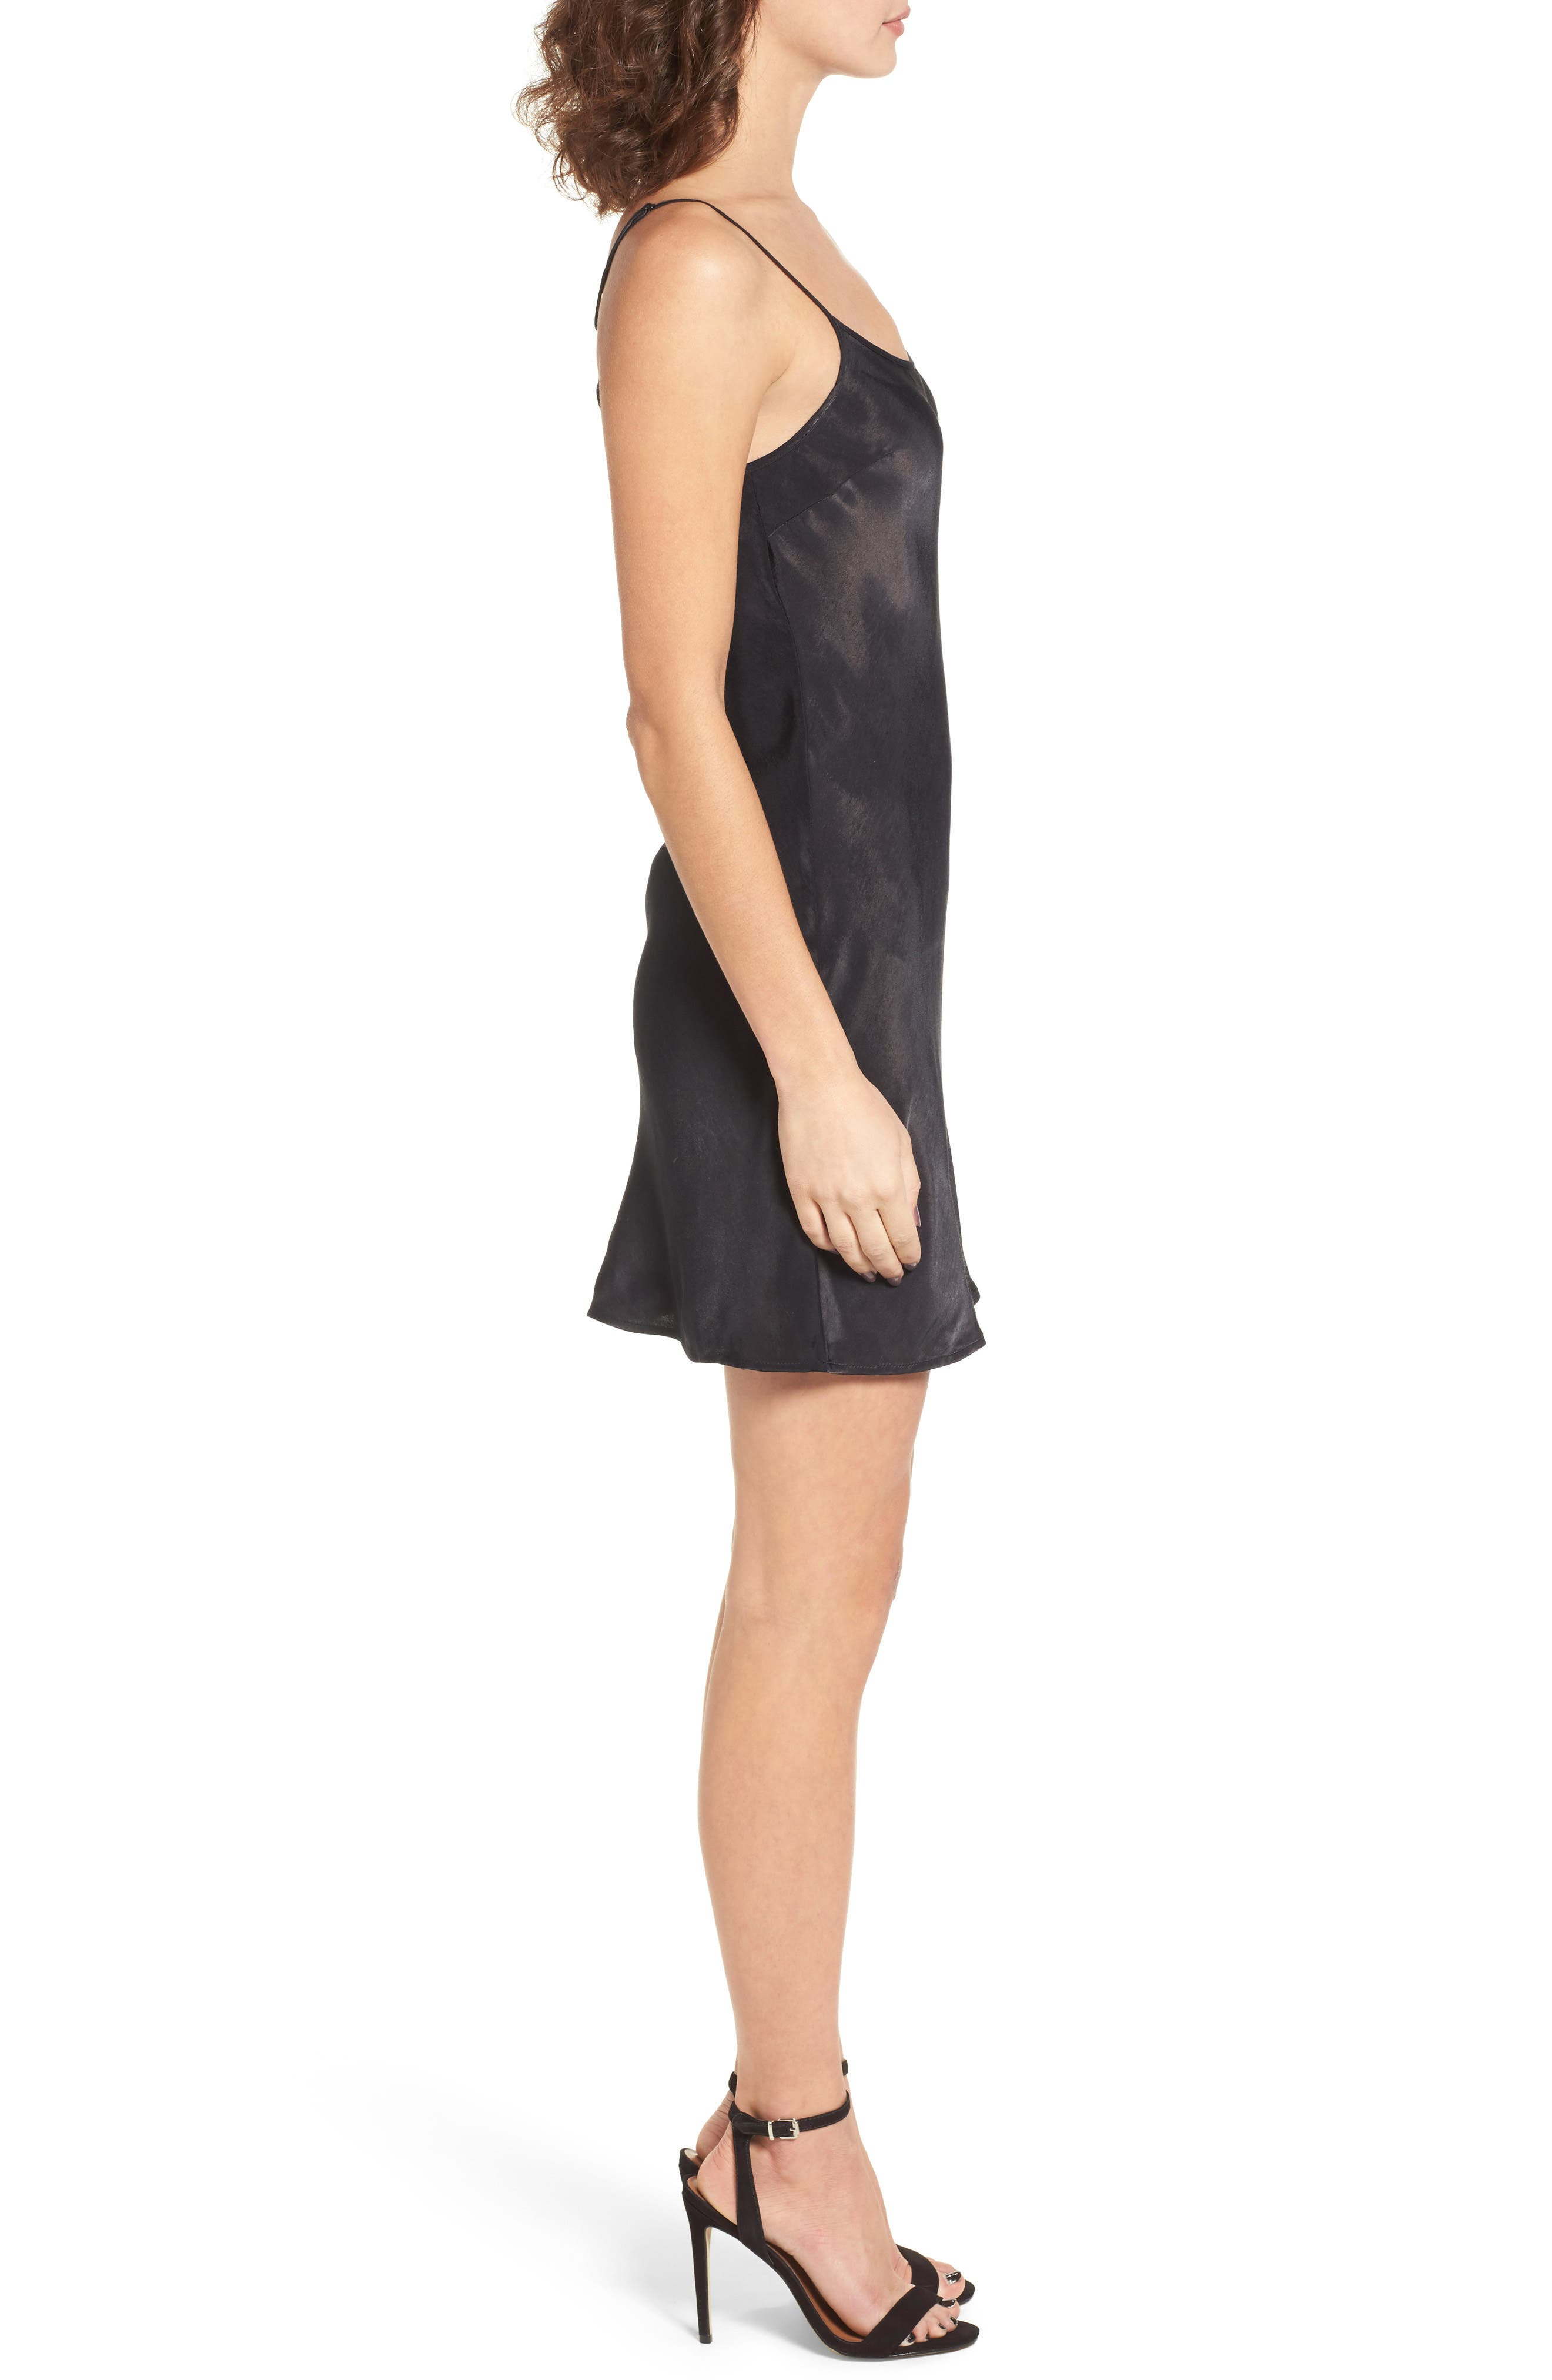 La Cienega Slipdress,                             Alternate thumbnail 3, color,                             Onyx